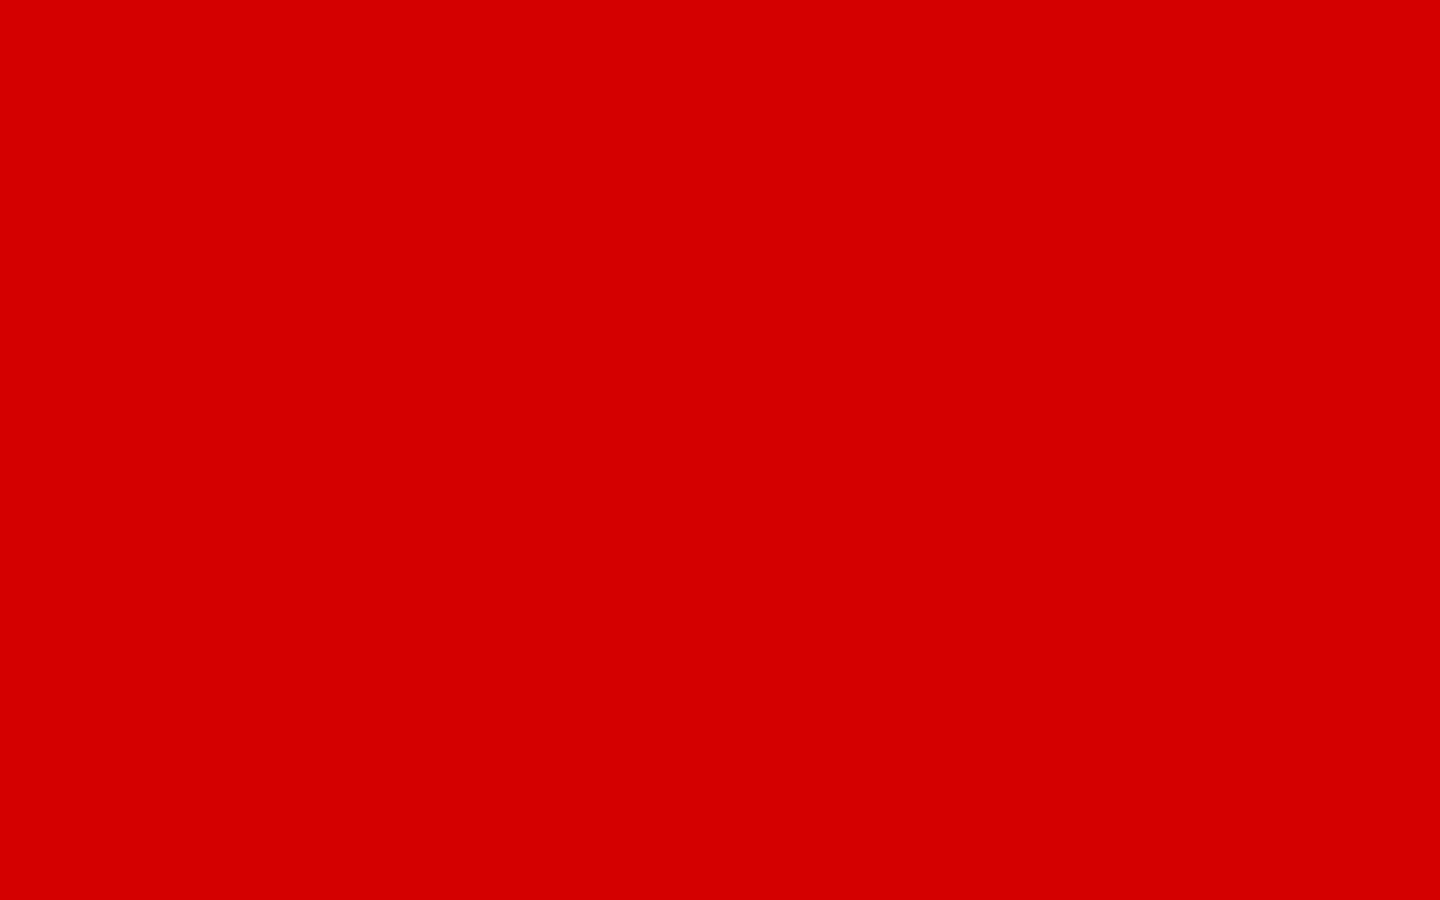 1440x900 Rosso Corsa Solid Color Background